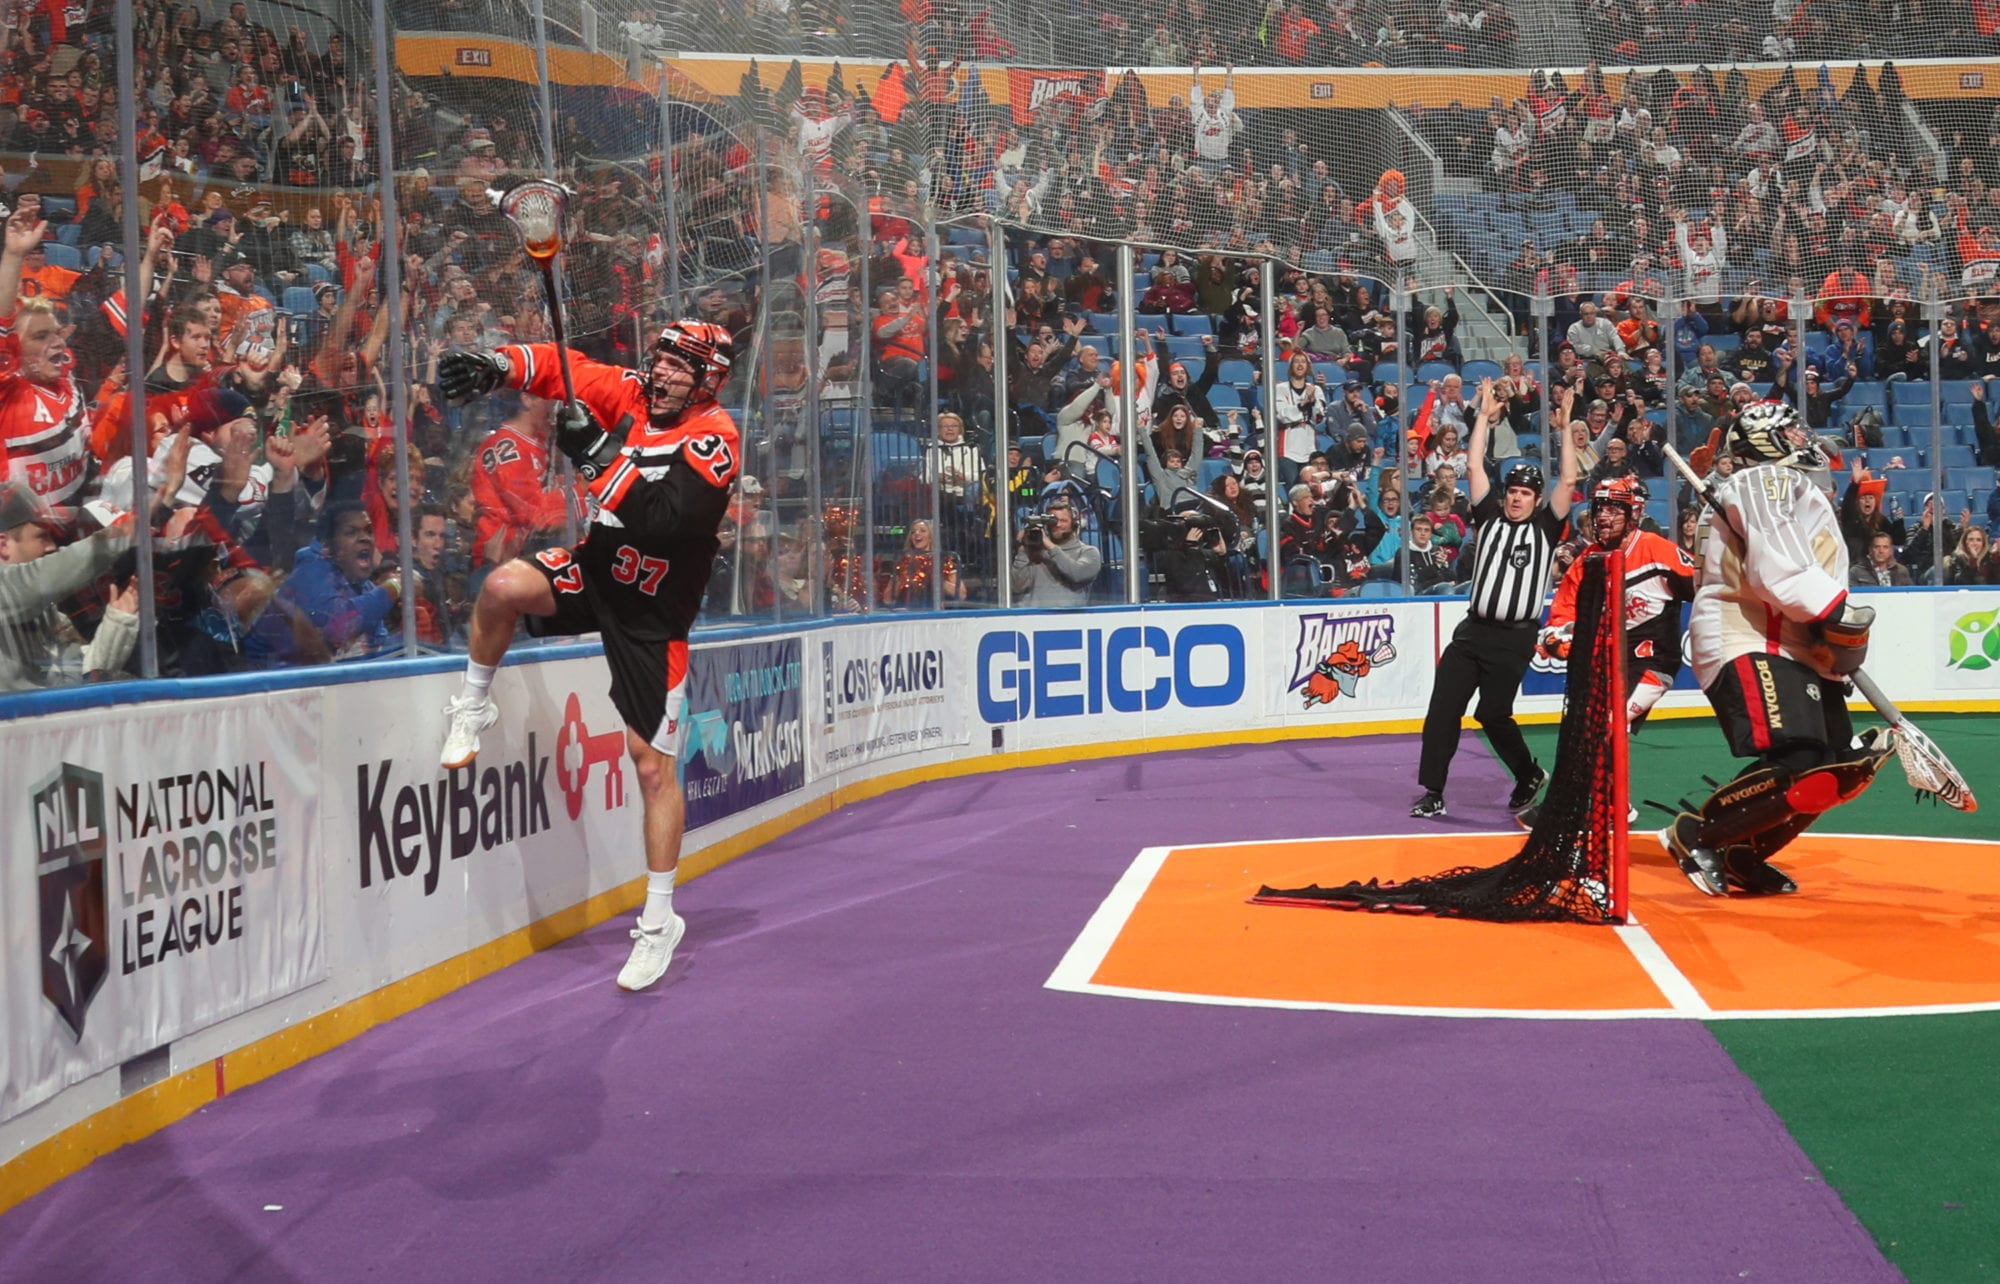 buffalo bandits philadelphia wings nll national lacrosse league